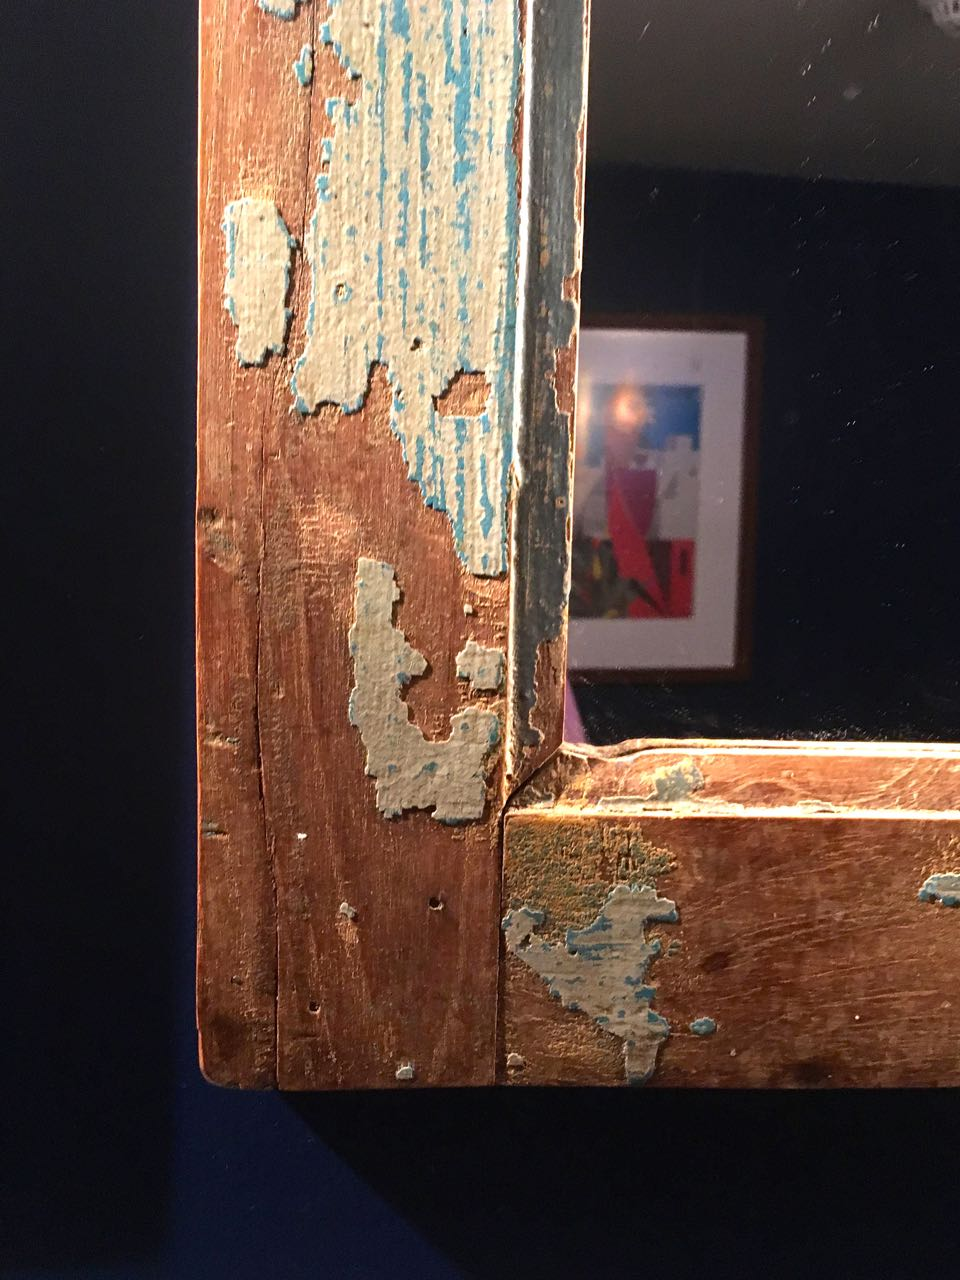 A textured corner of a picture frame